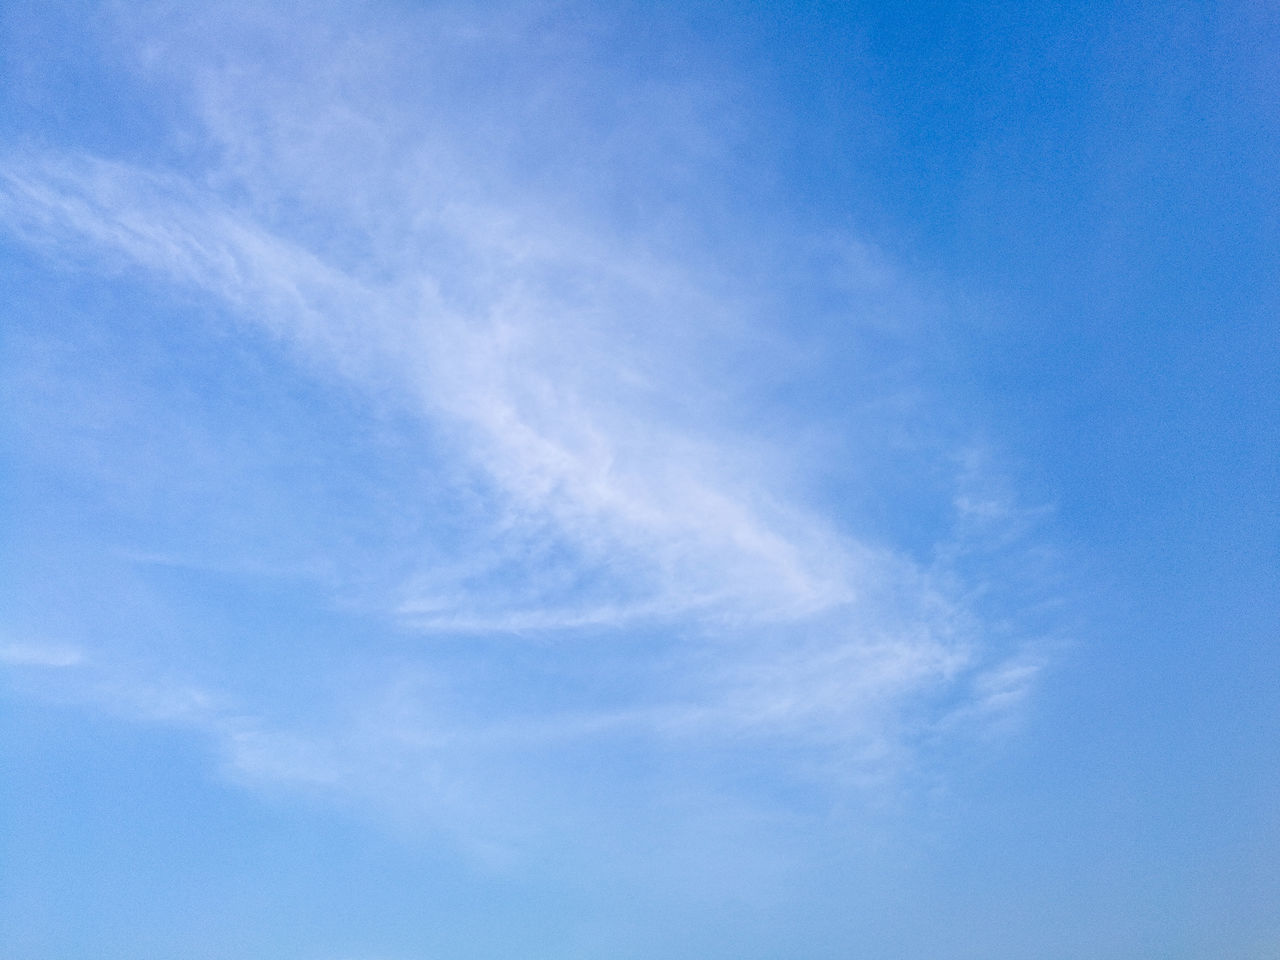 blue, low angle view, sky, beauty in nature, nature, backgrounds, sky only, day, no people, scenics, tranquility, outdoors, cloud - sky, full frame